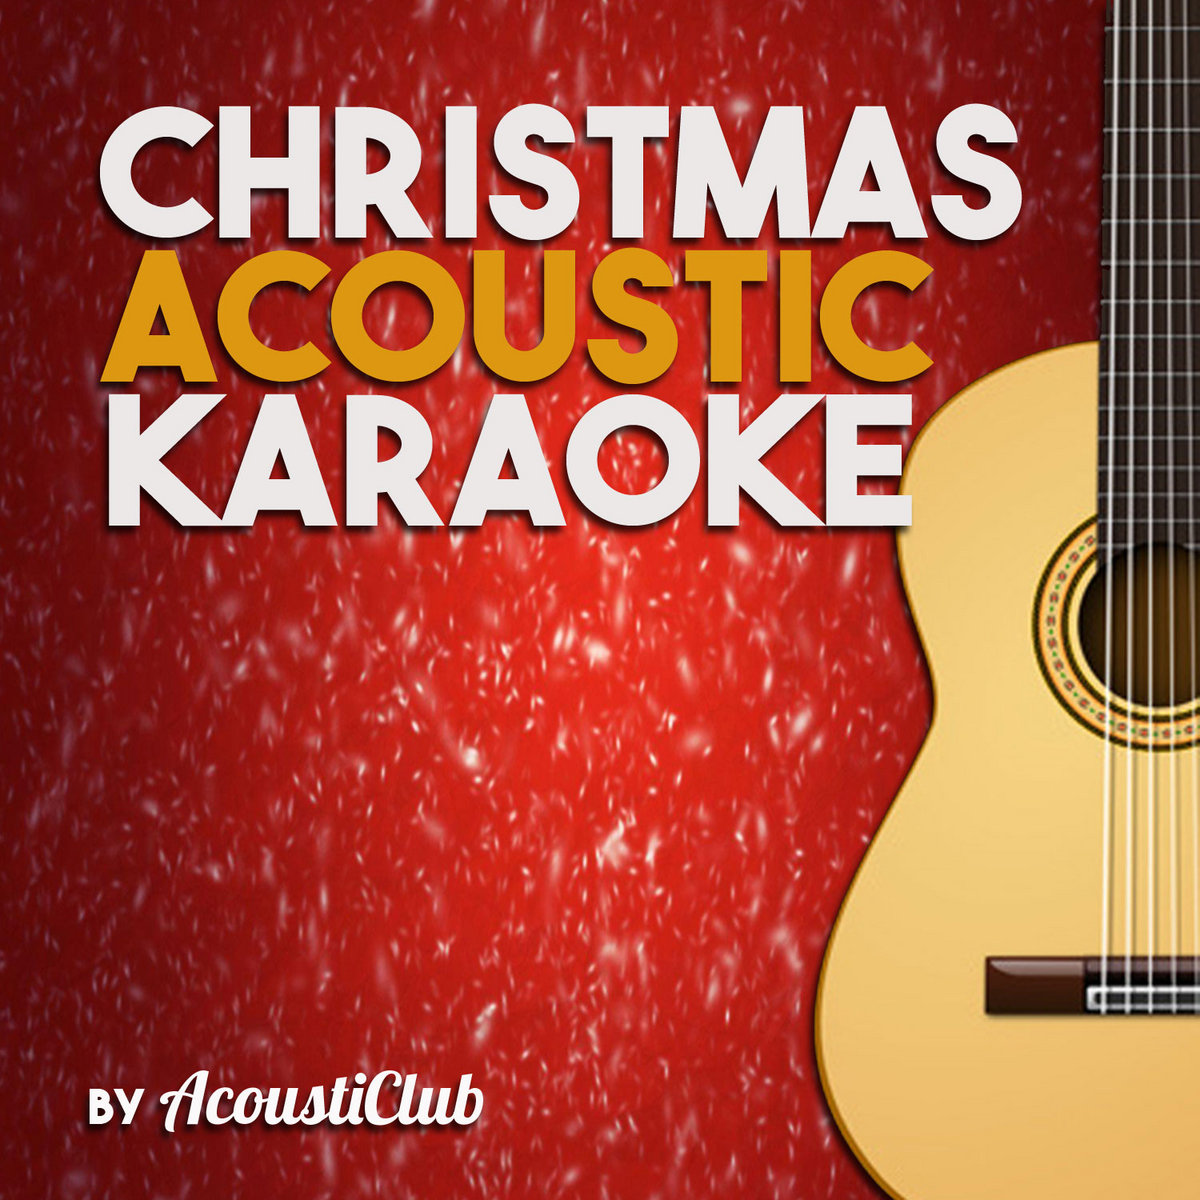 Christmas Acoustic Karaoke | AcoustiClub